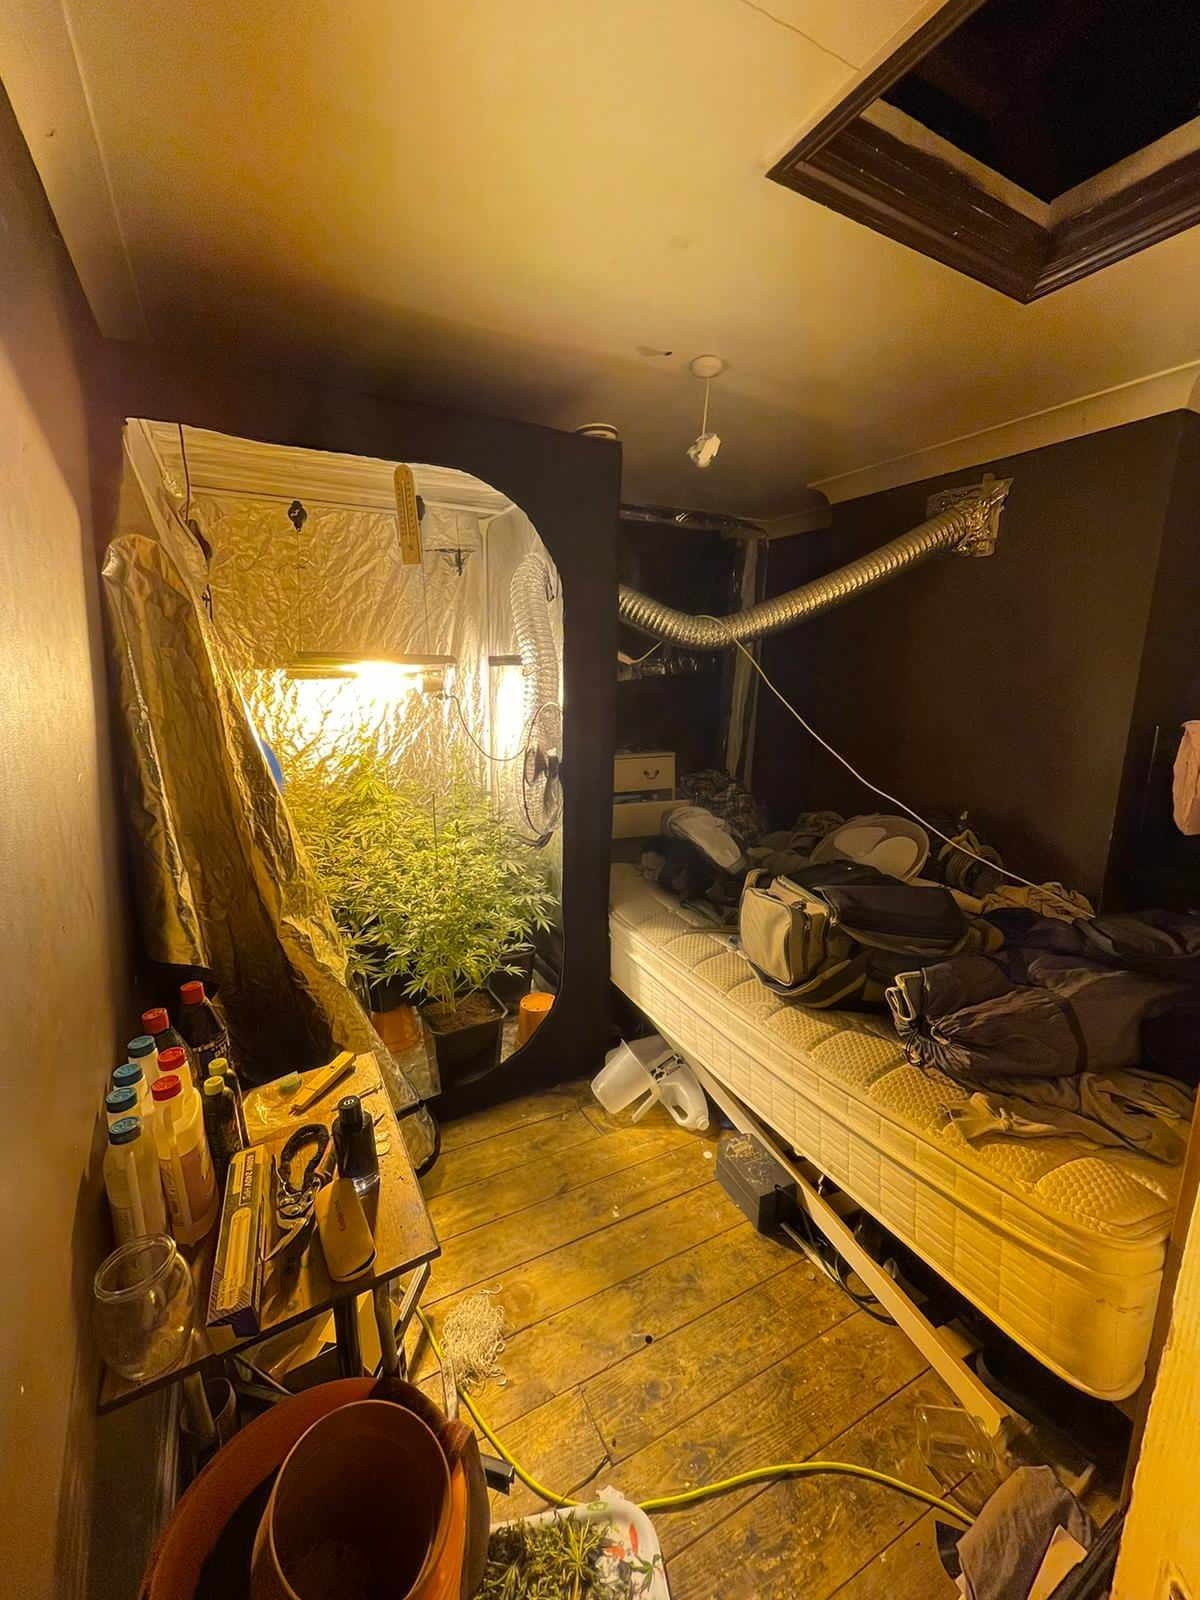 Cannabis grown inside a property on the Greenwich Peninsula